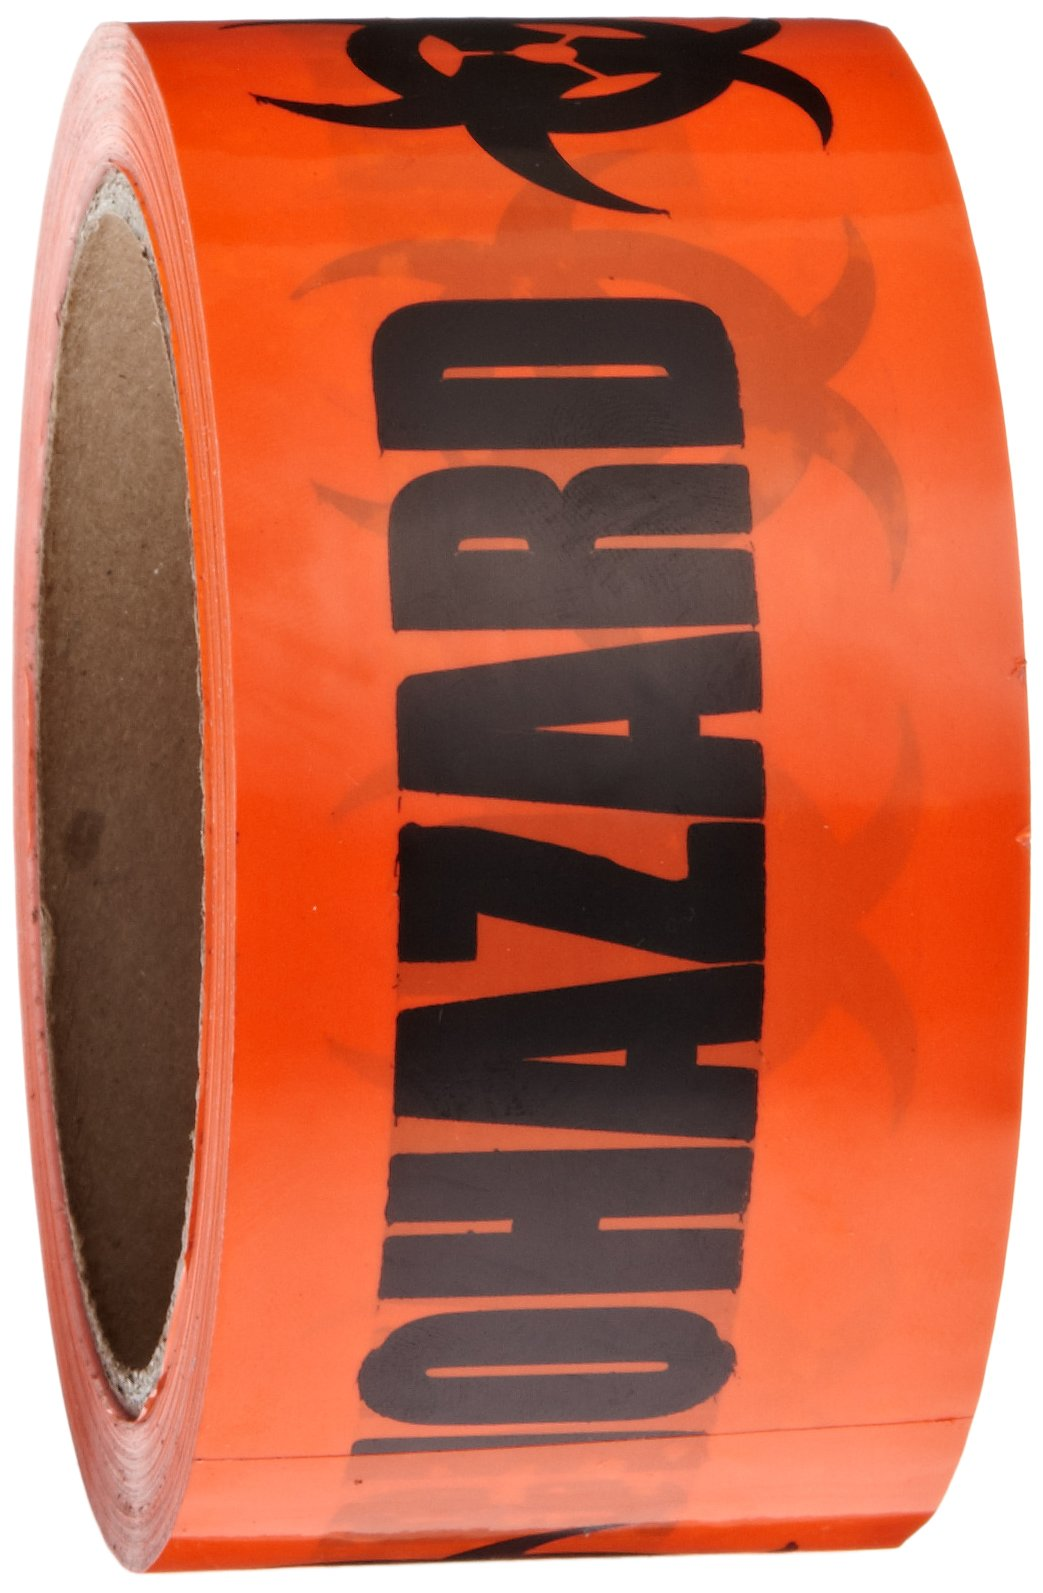 Roll Products 142-0004 PVC Film Biohazard Warning Tape with Black Imprint, Legend ''Biohazard'' (with Logo), 55 yd. Length x 2'' Width, 3'' Diameter Core Roll, for Identifying and Marking, Fluorescent Red/Orange